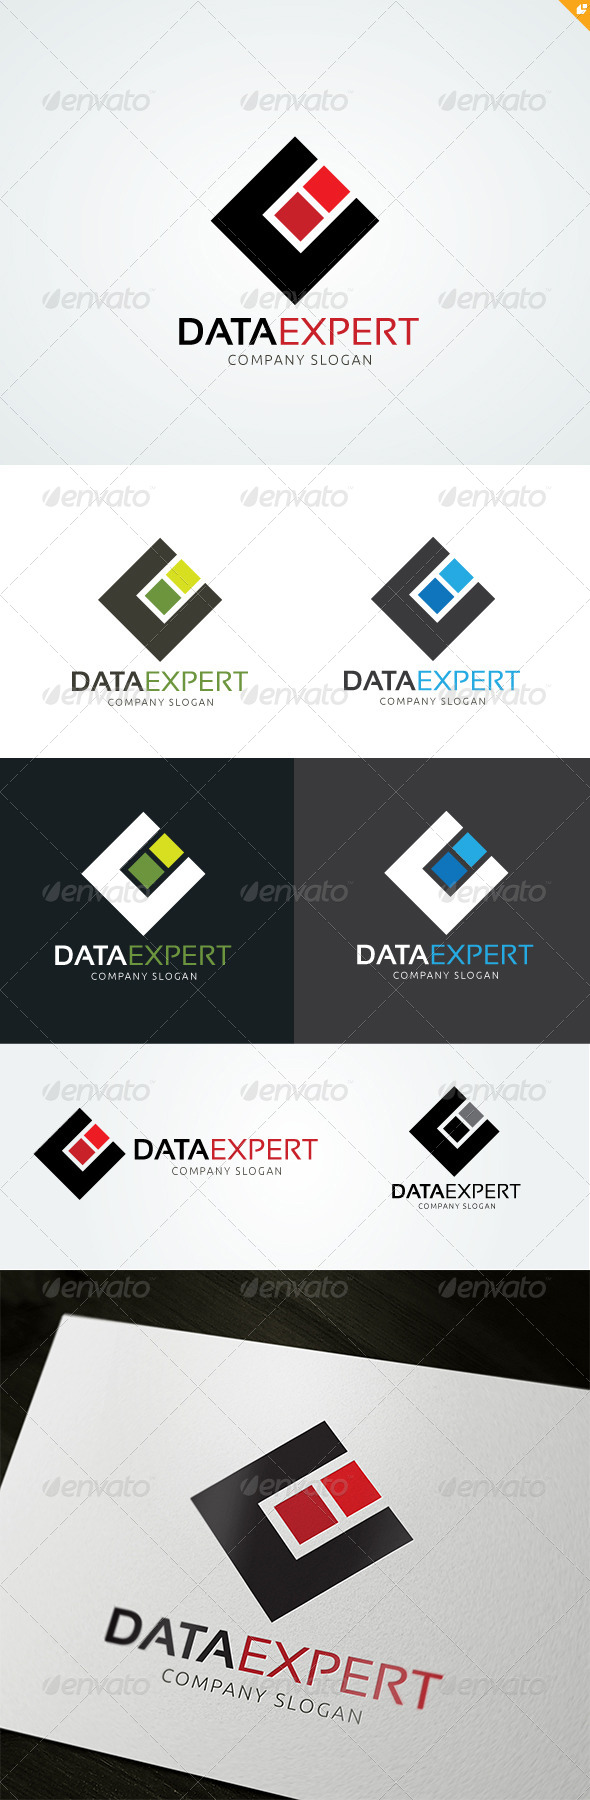 GraphicRiver Data Expert 8296700